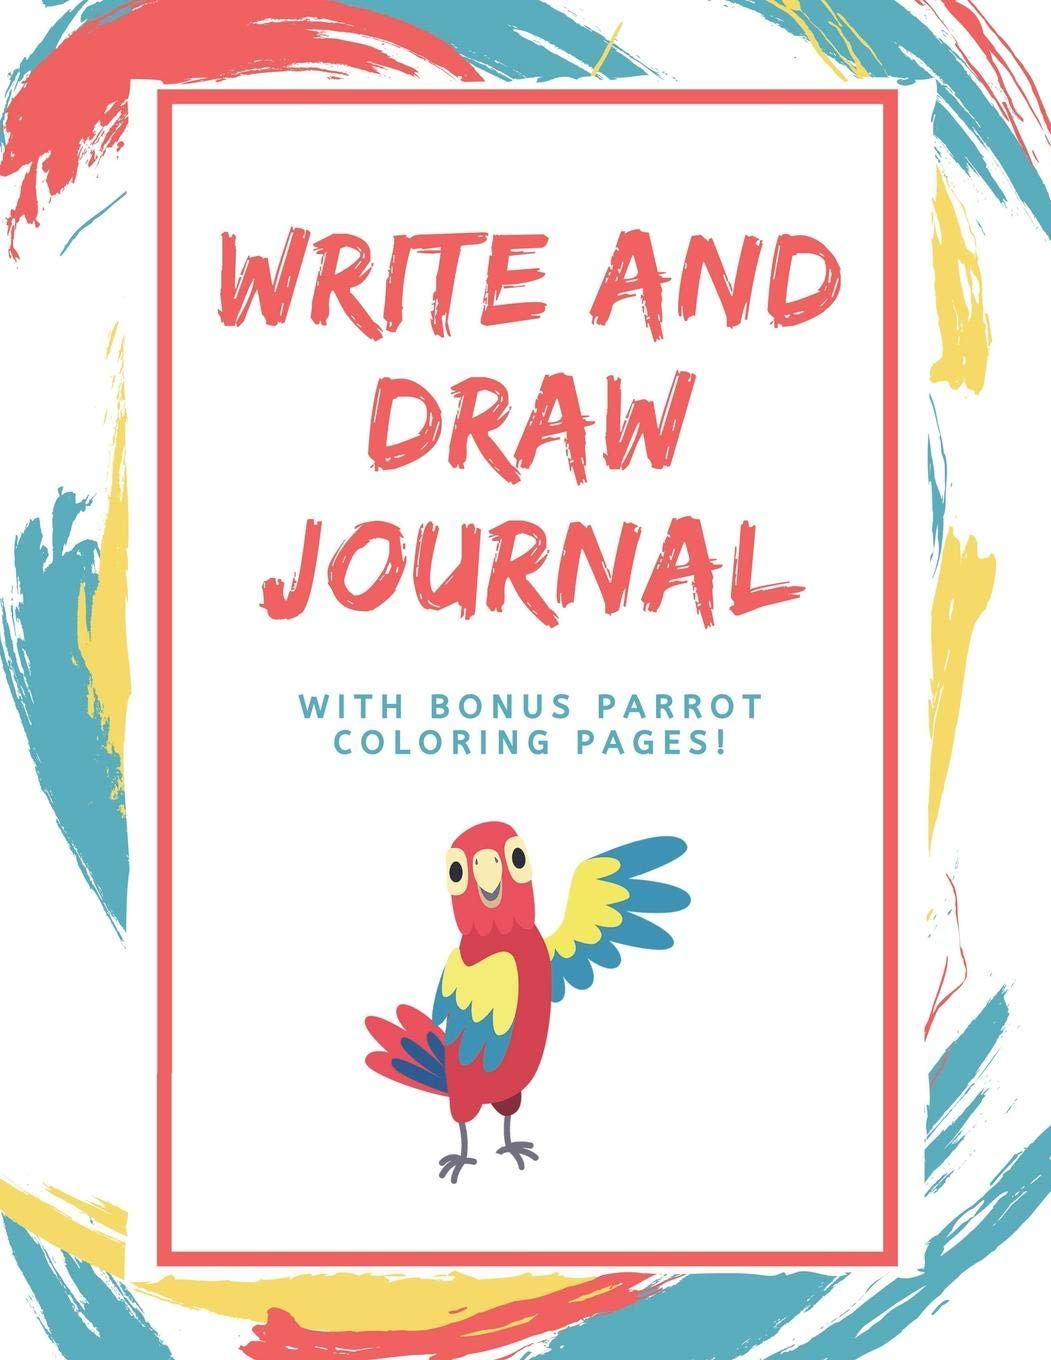 Amazon.com: Write and Draw Journal with Bonus Parrot ...